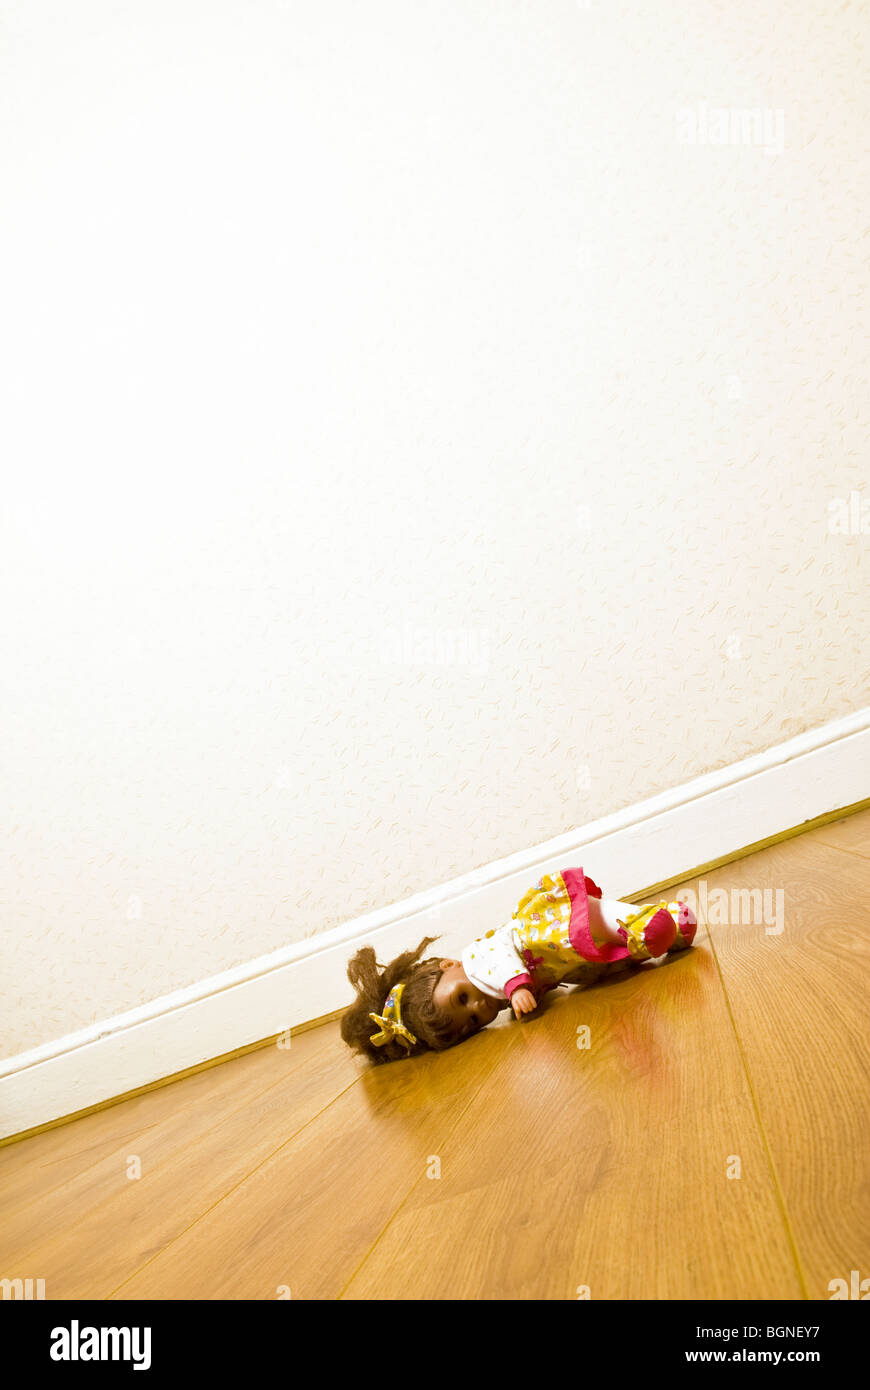 Doll laying on floor - Stock Image